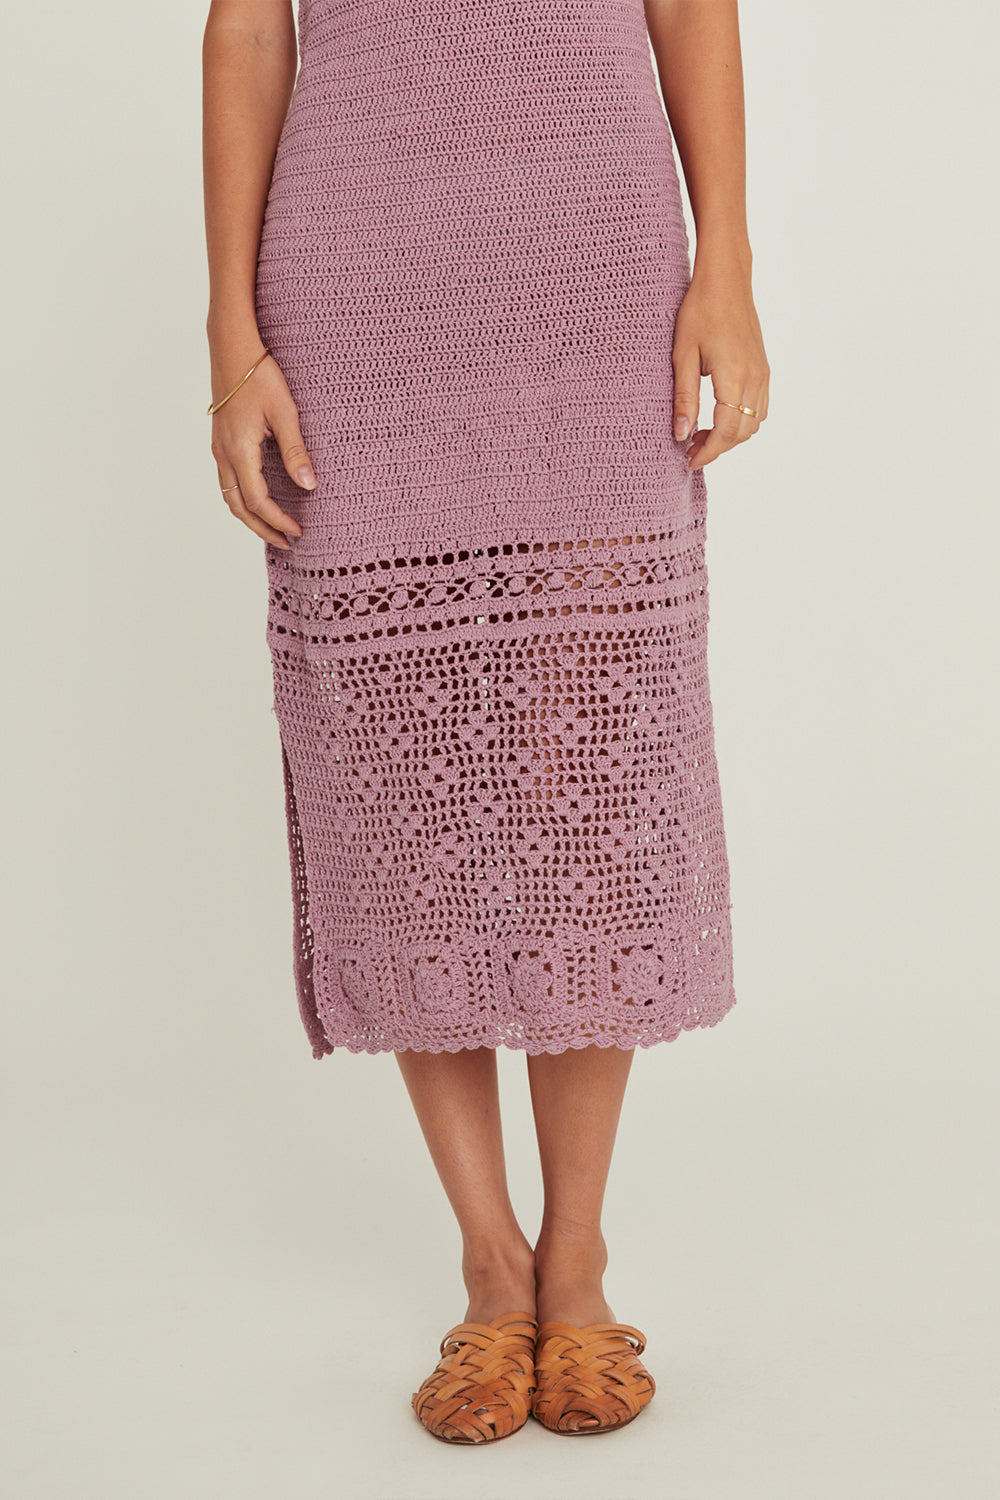 Delilah Dress in Lavender